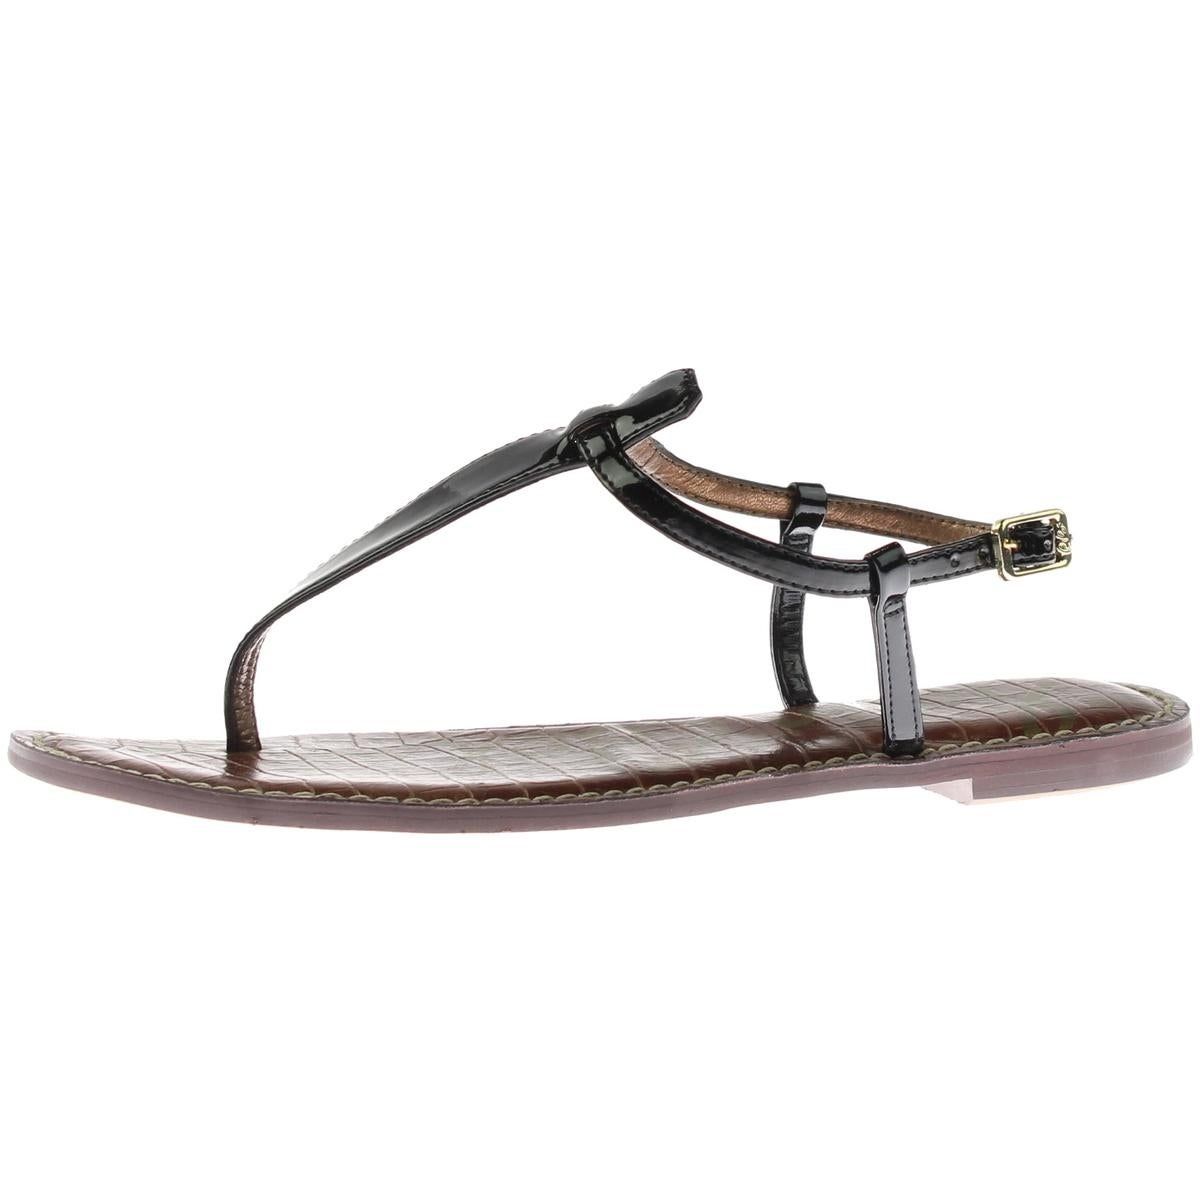 99266deff86f Shop Sam Edelman Womens Gigi Thong Sandals Buckle T-Strap - Free Shipping  On Orders Over  45 - Overstock - 13308844